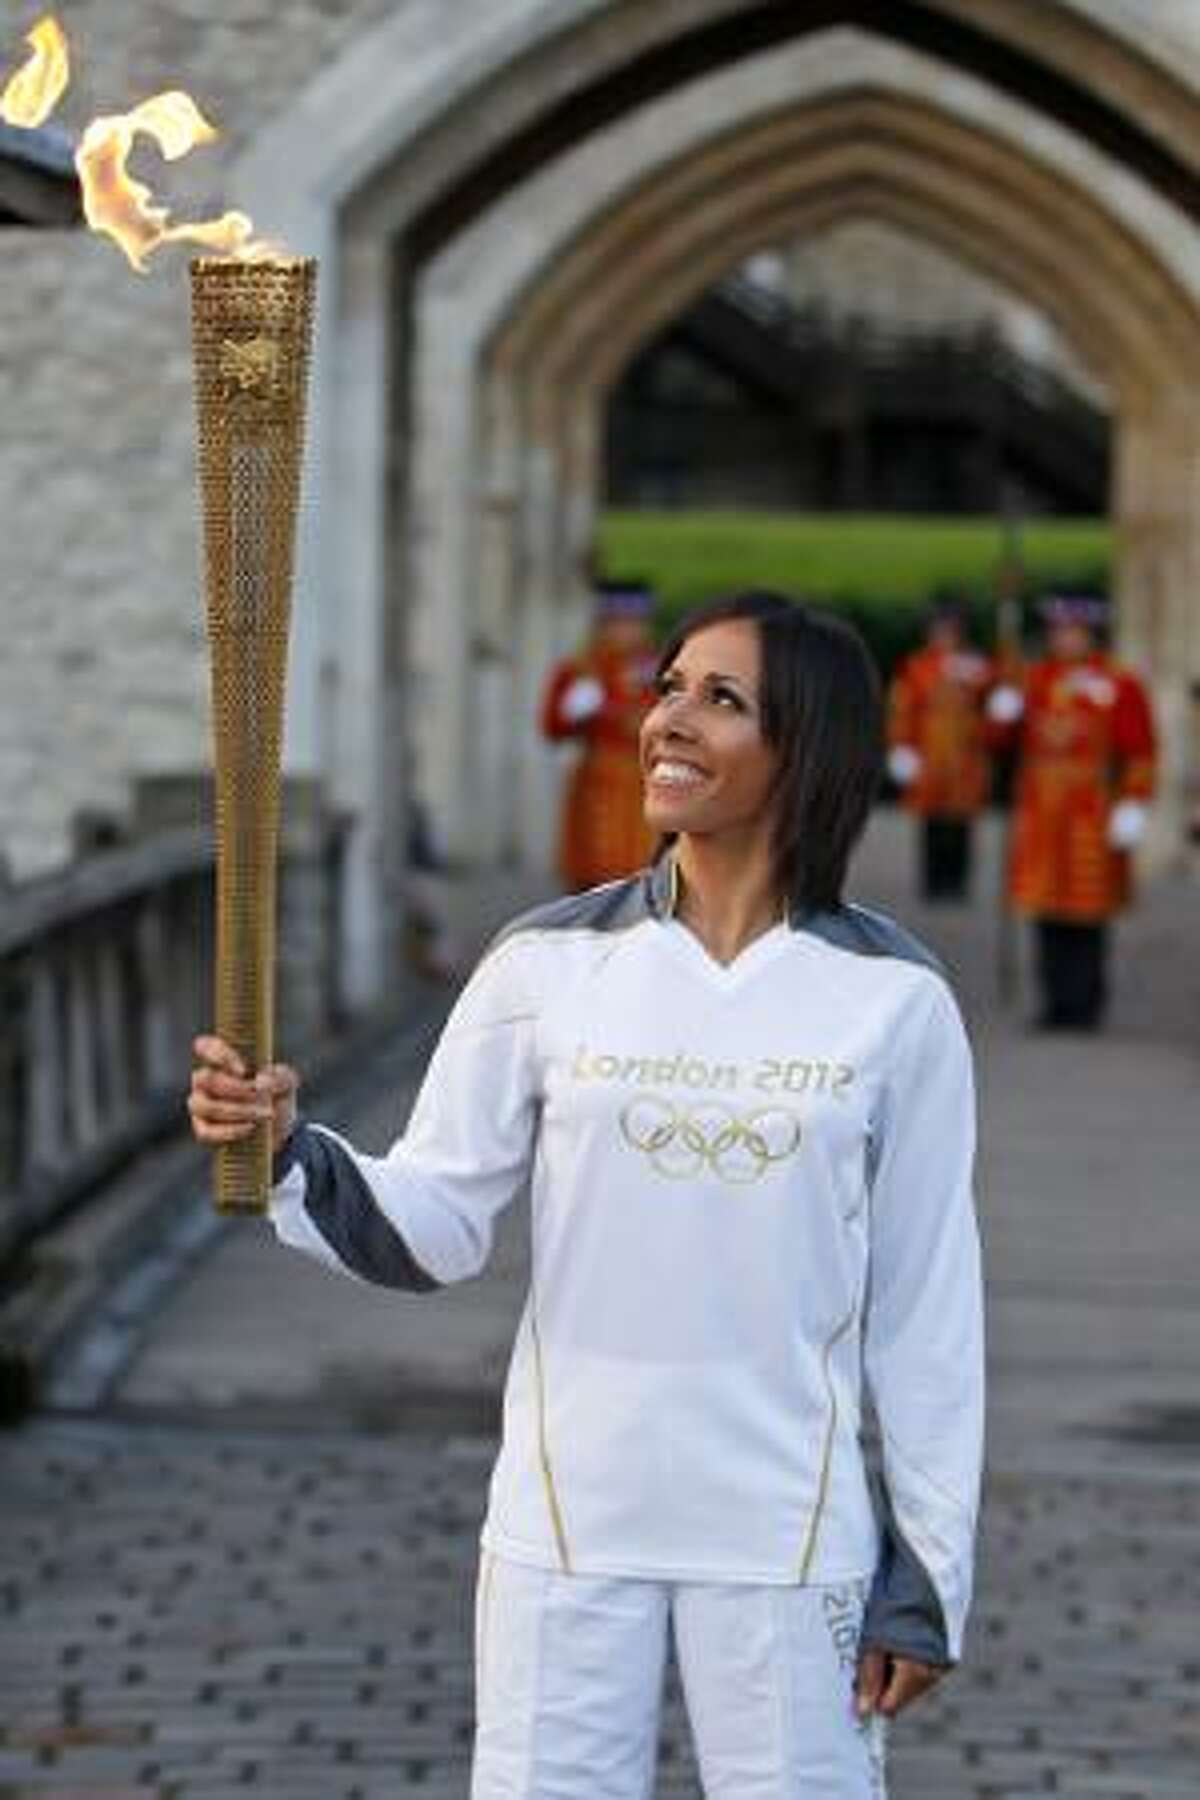 ASSOCIATED PRESS British retired champion Dame Kelly Holmes poses for the photographers with the Olympic flame at the Tower of London on Friday. The Olympic torch arrived in London after it was carried around England in a relay of torchbearers to make its way to the London 2012 Olympic Games opening ceremony on July 27.